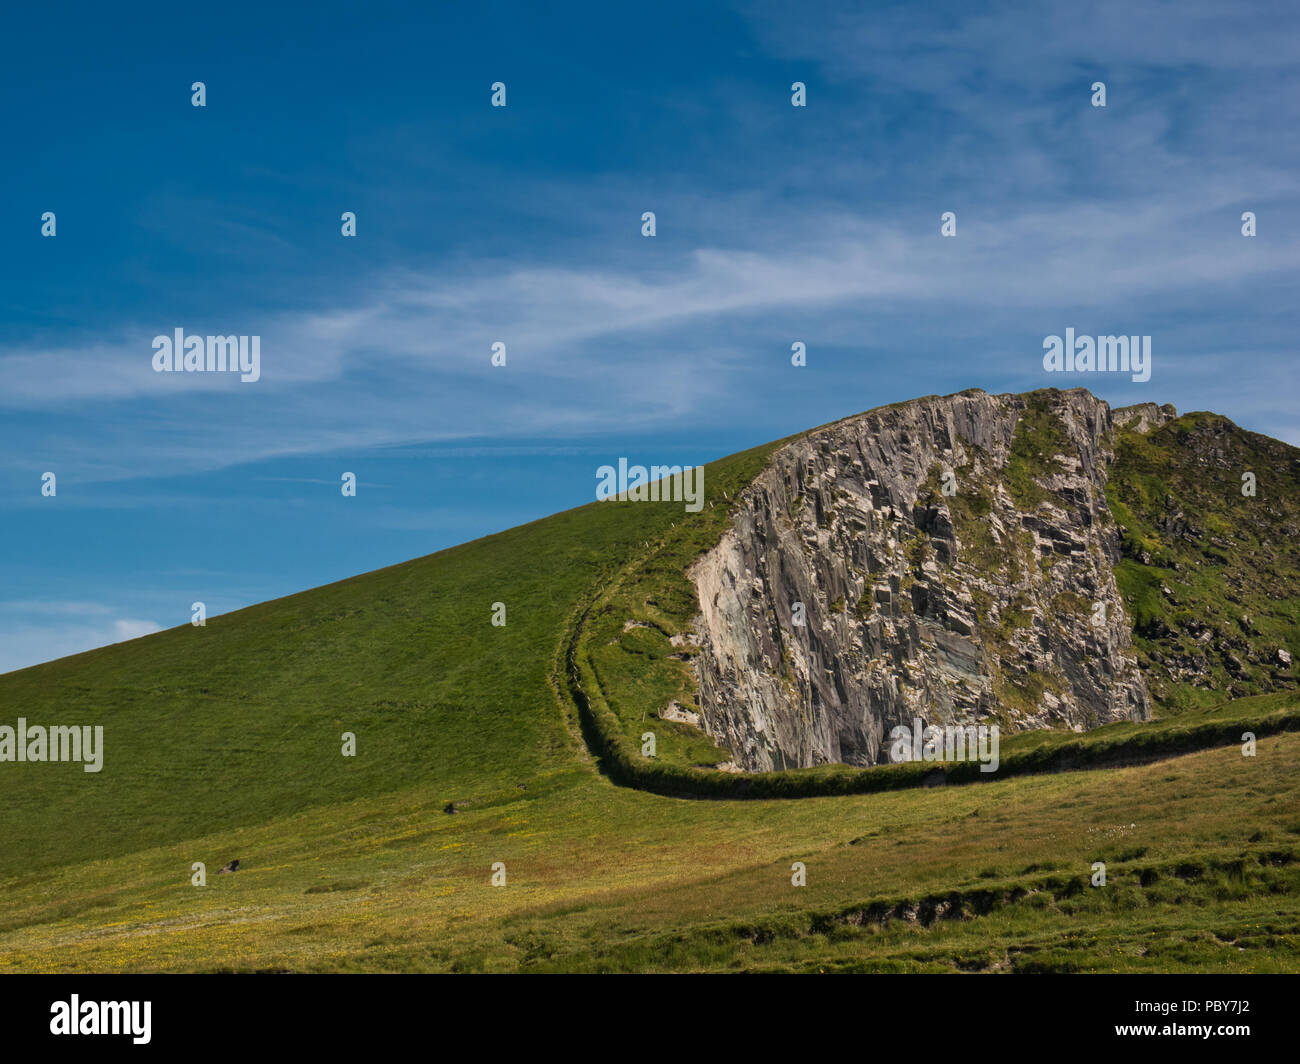 Green meadow with a fence just before the precipice on a rock wall on the west coast of Ireland in Portmagee - Stock Image